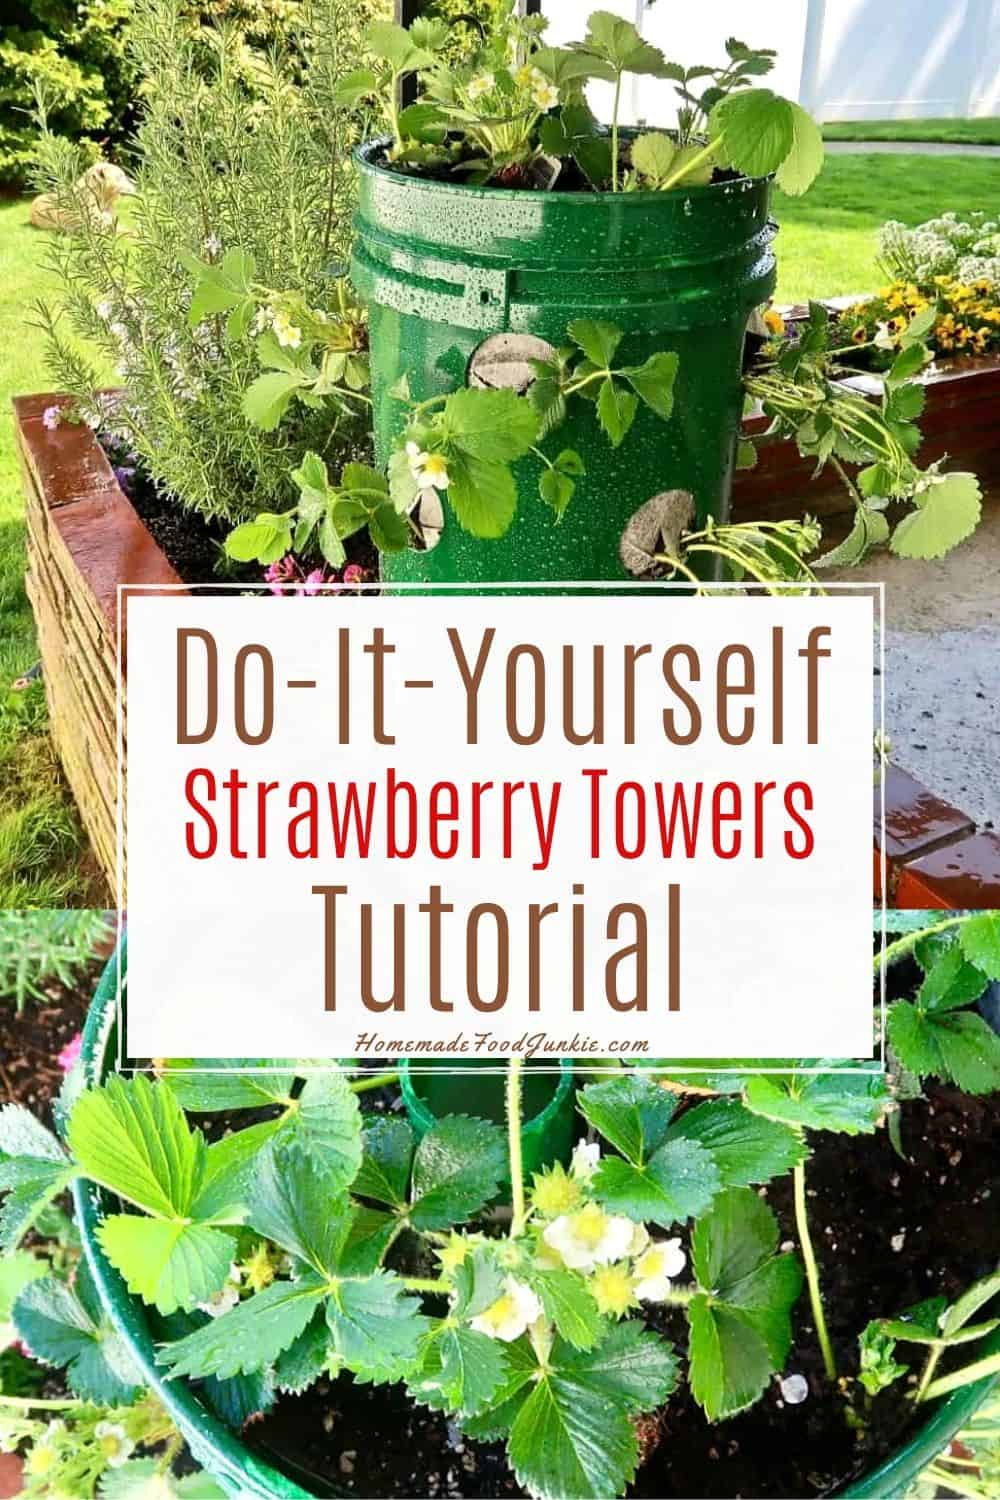 Do it yourself strawberry towers tutorial-pin image